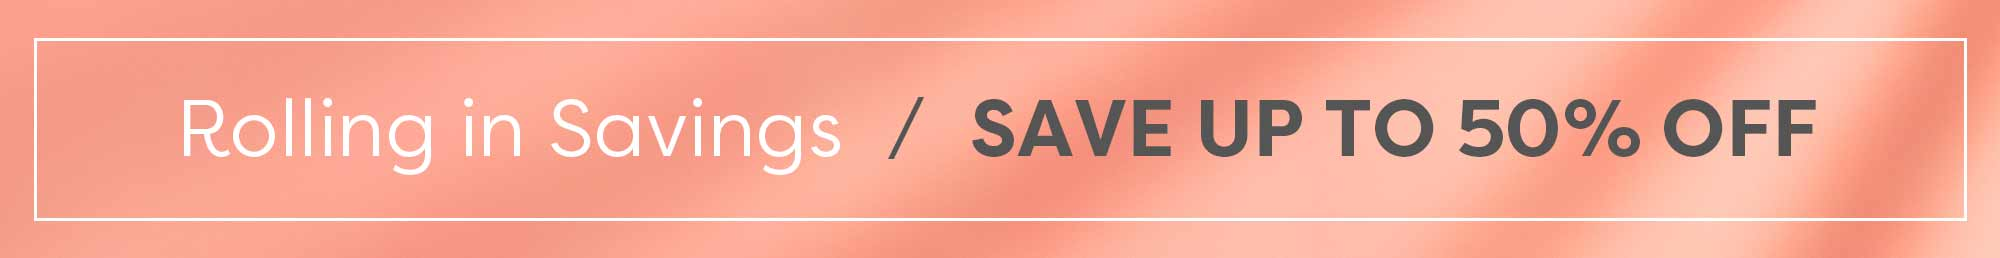 Rolling in Savings. Save up to 50%